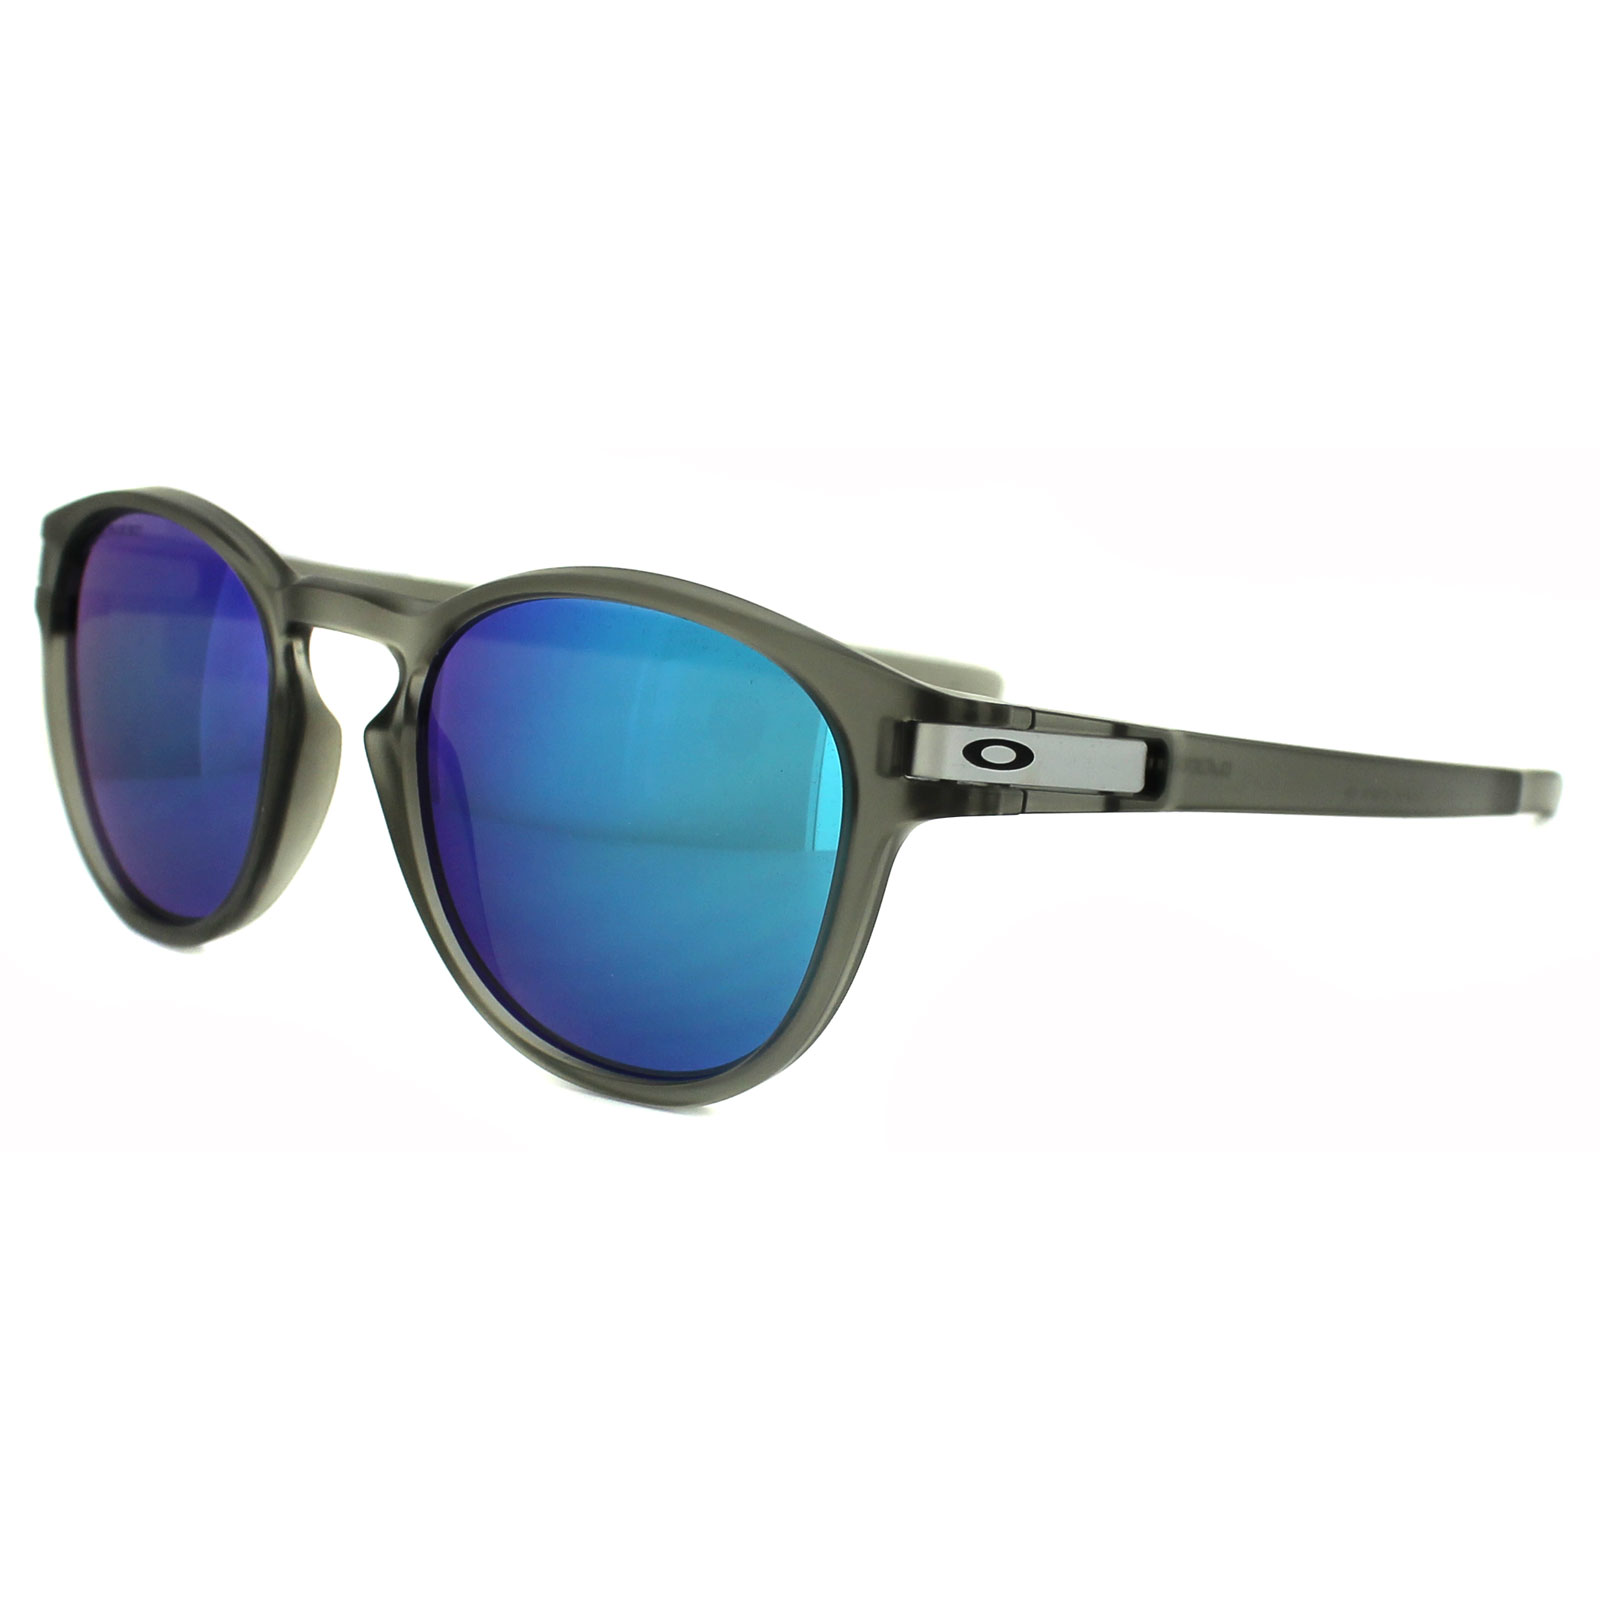 discount sunglasses oakley 266n  Oakley Latch Sunglasses